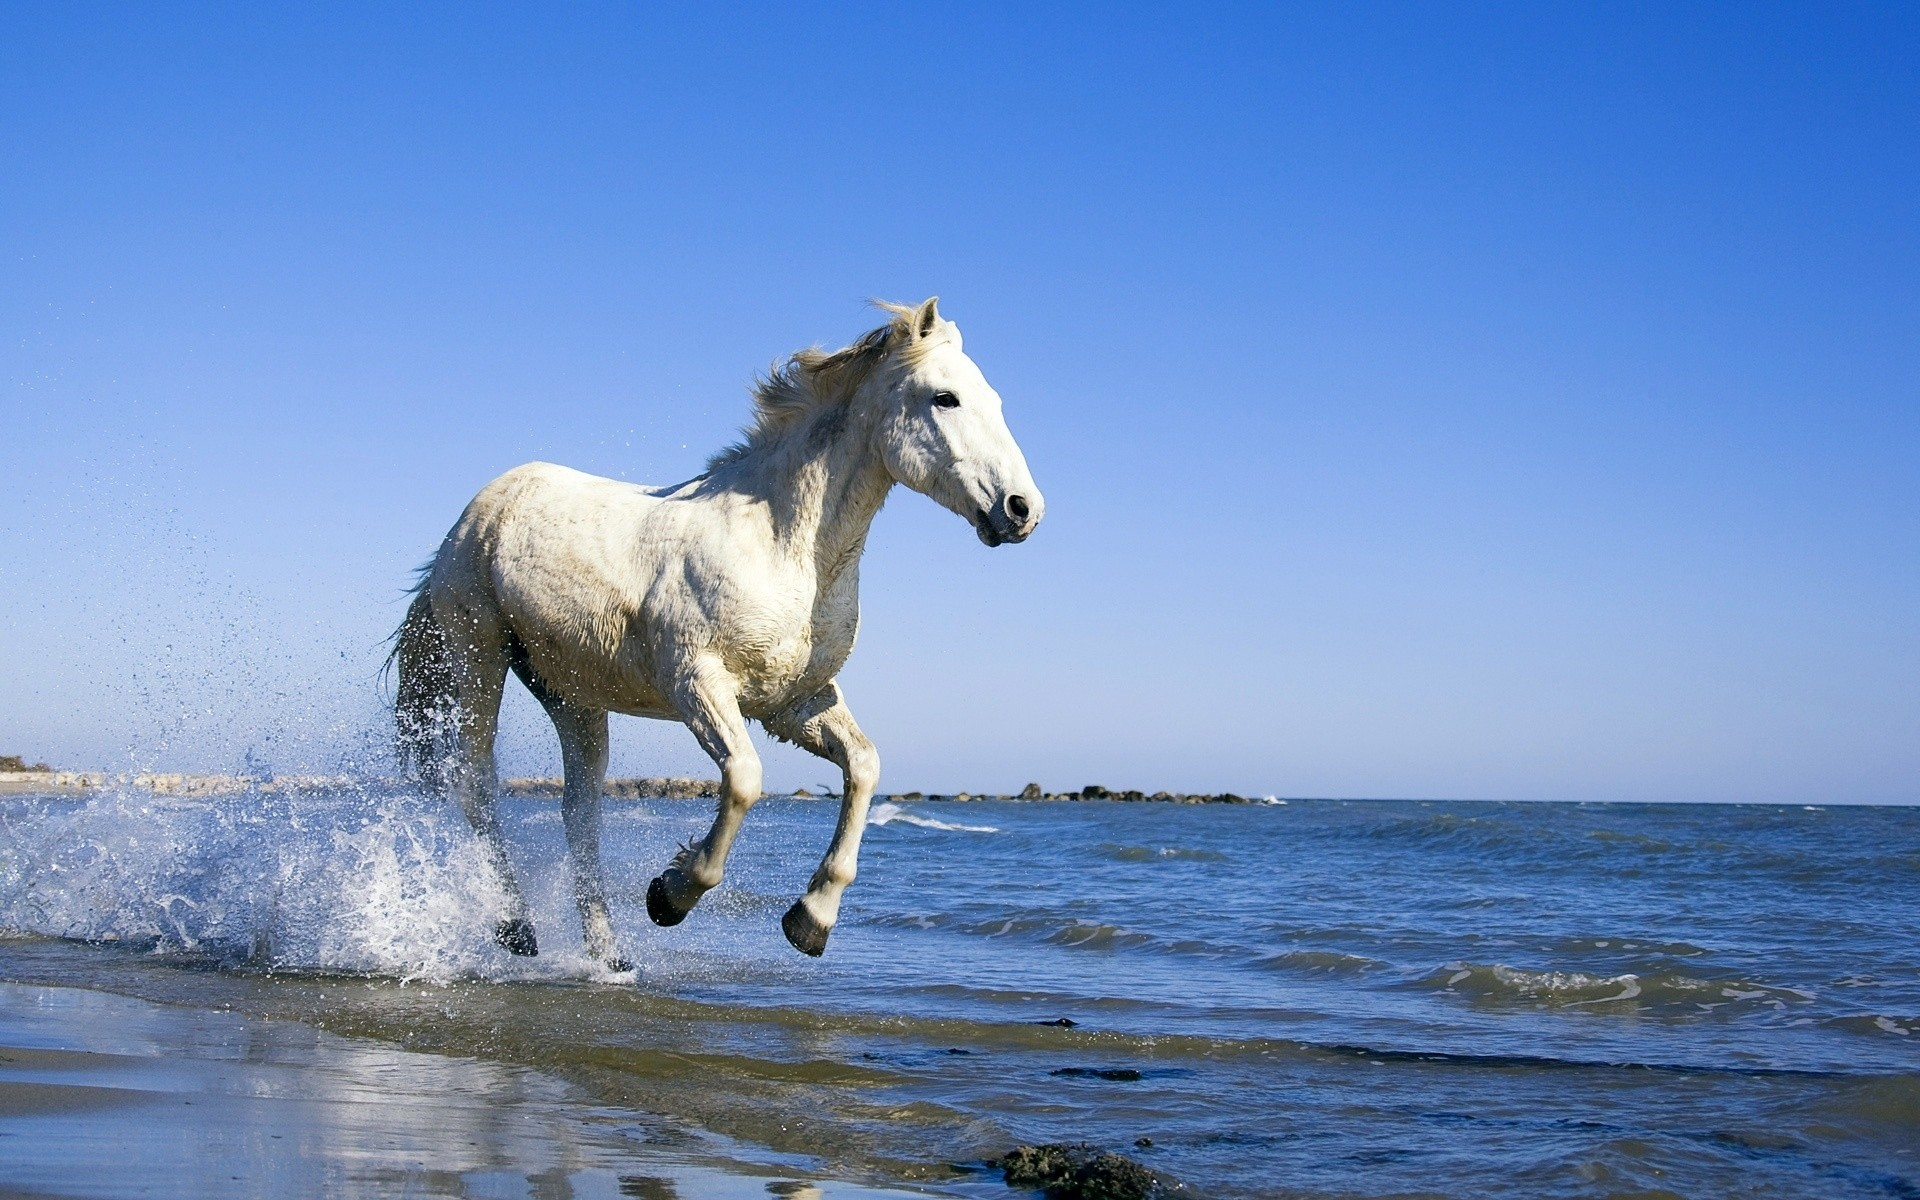 animals mammal horse mare outdoors water cavalry sky nature animal summer freedom stud ocean free relaxing